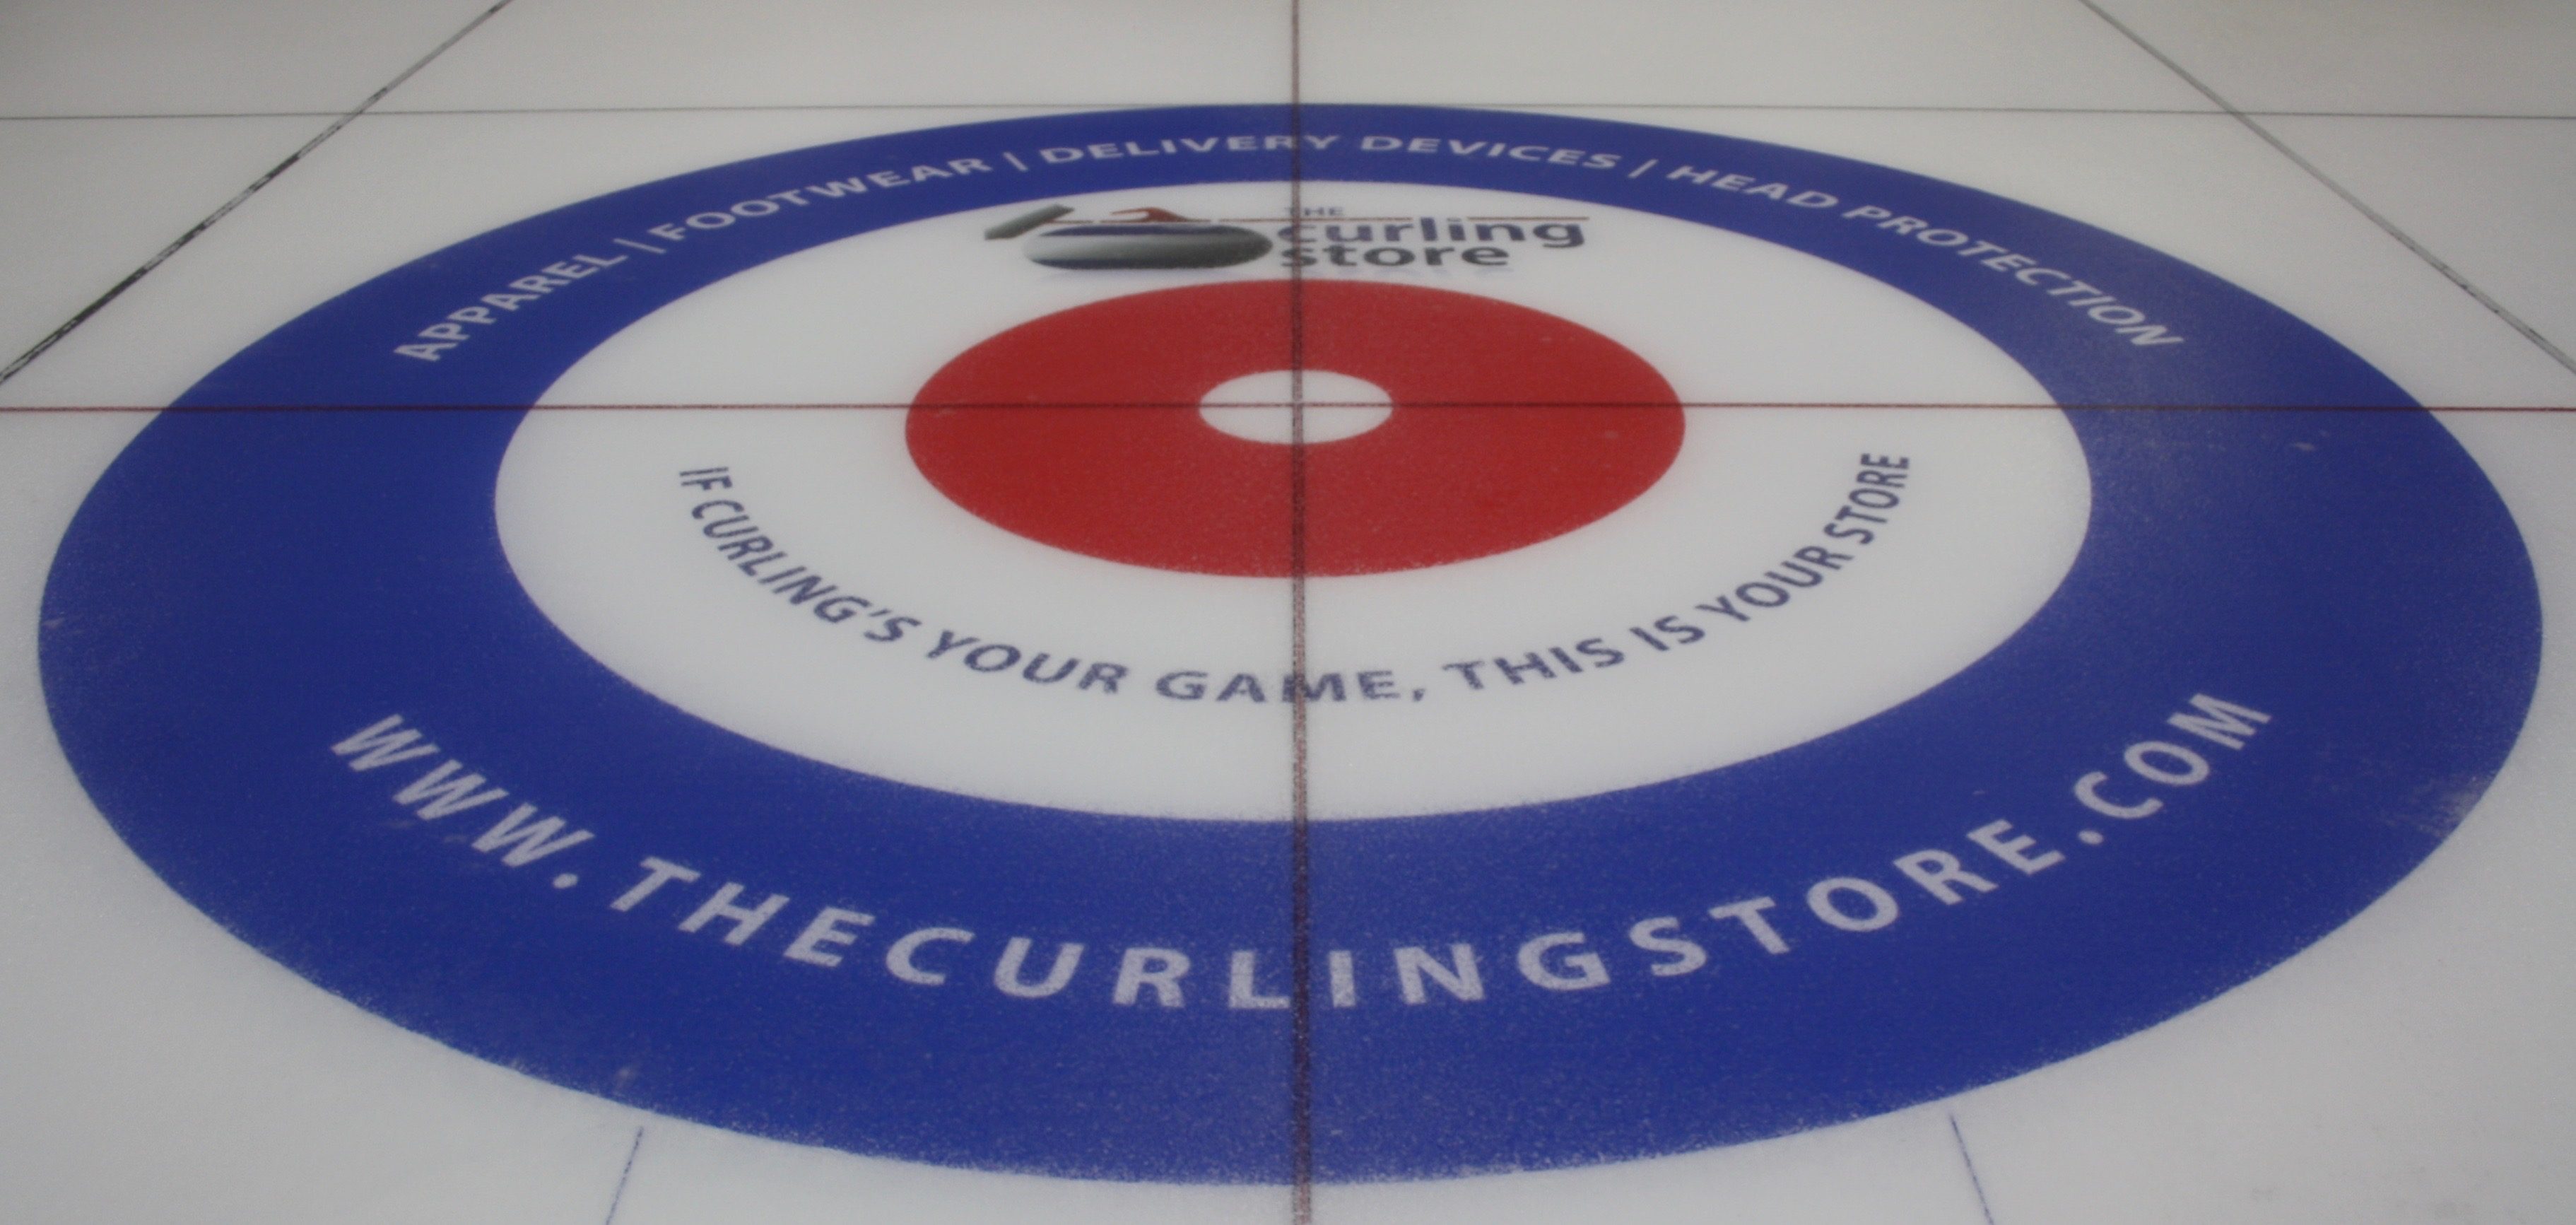 The Curling Store